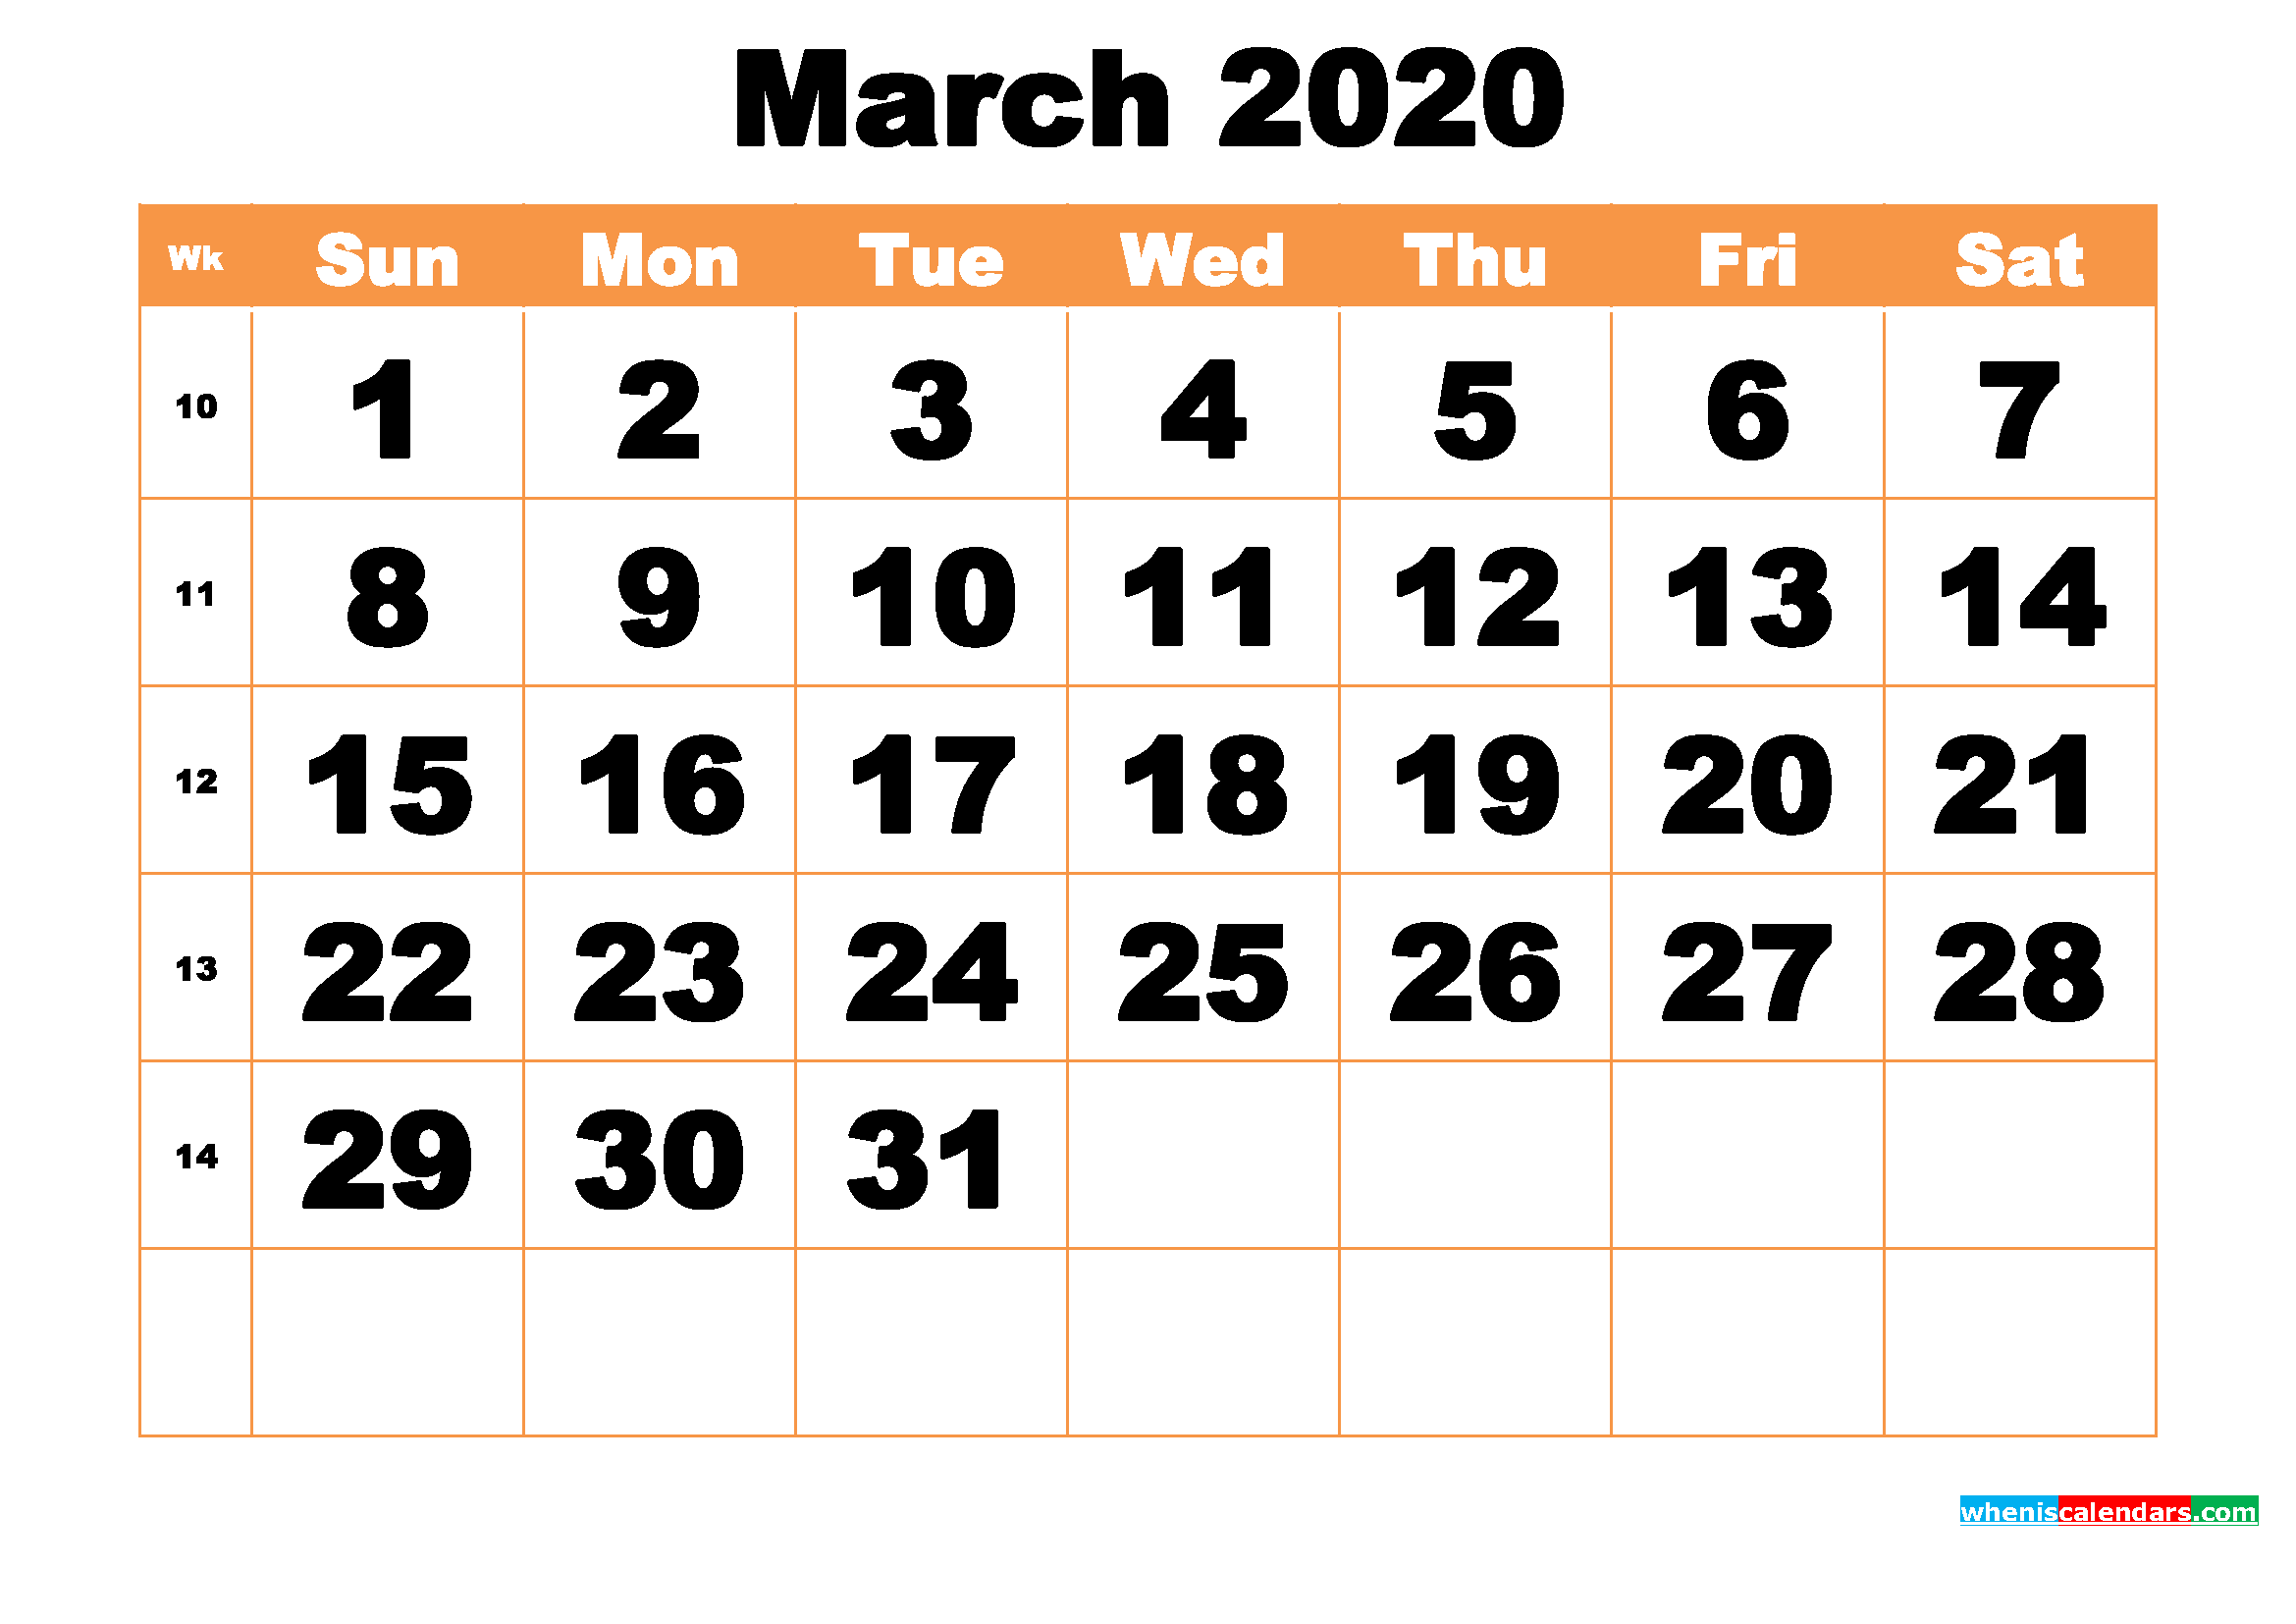 Free Printable March 2020 Calendar Word, PDF, Image